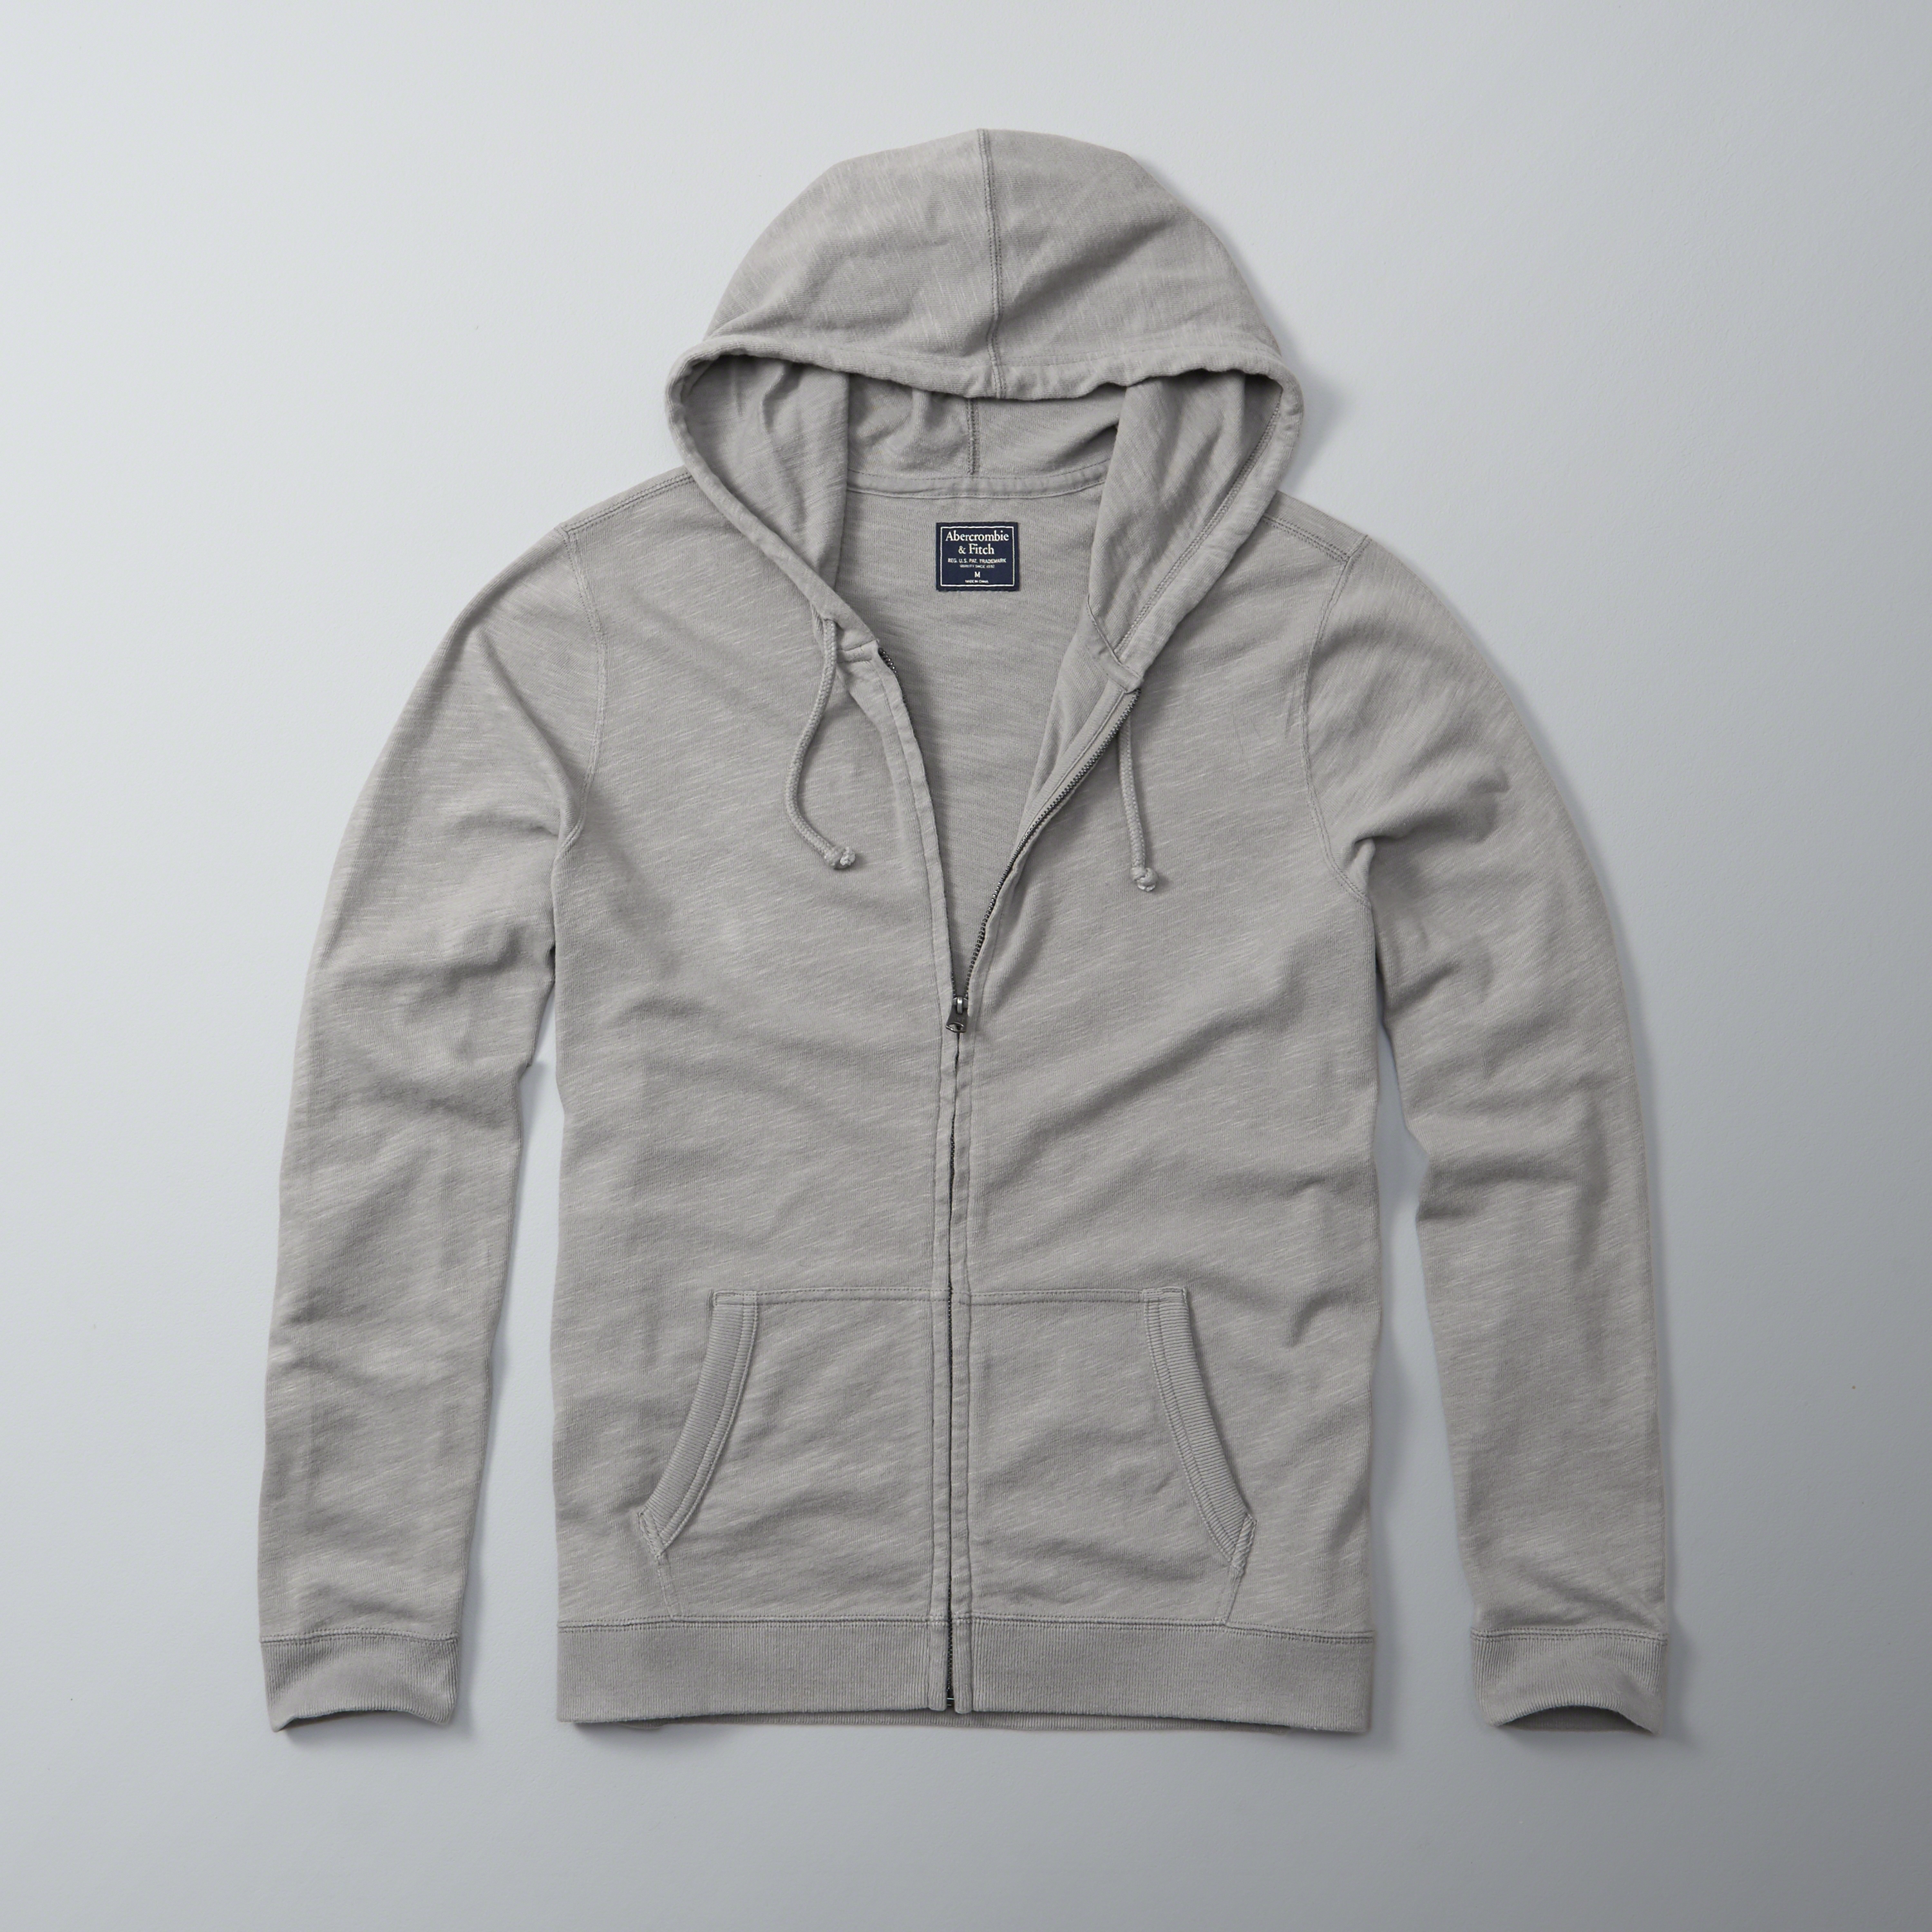 Abercrombie & Fitch Full-zip Hoodie In Gray For Men